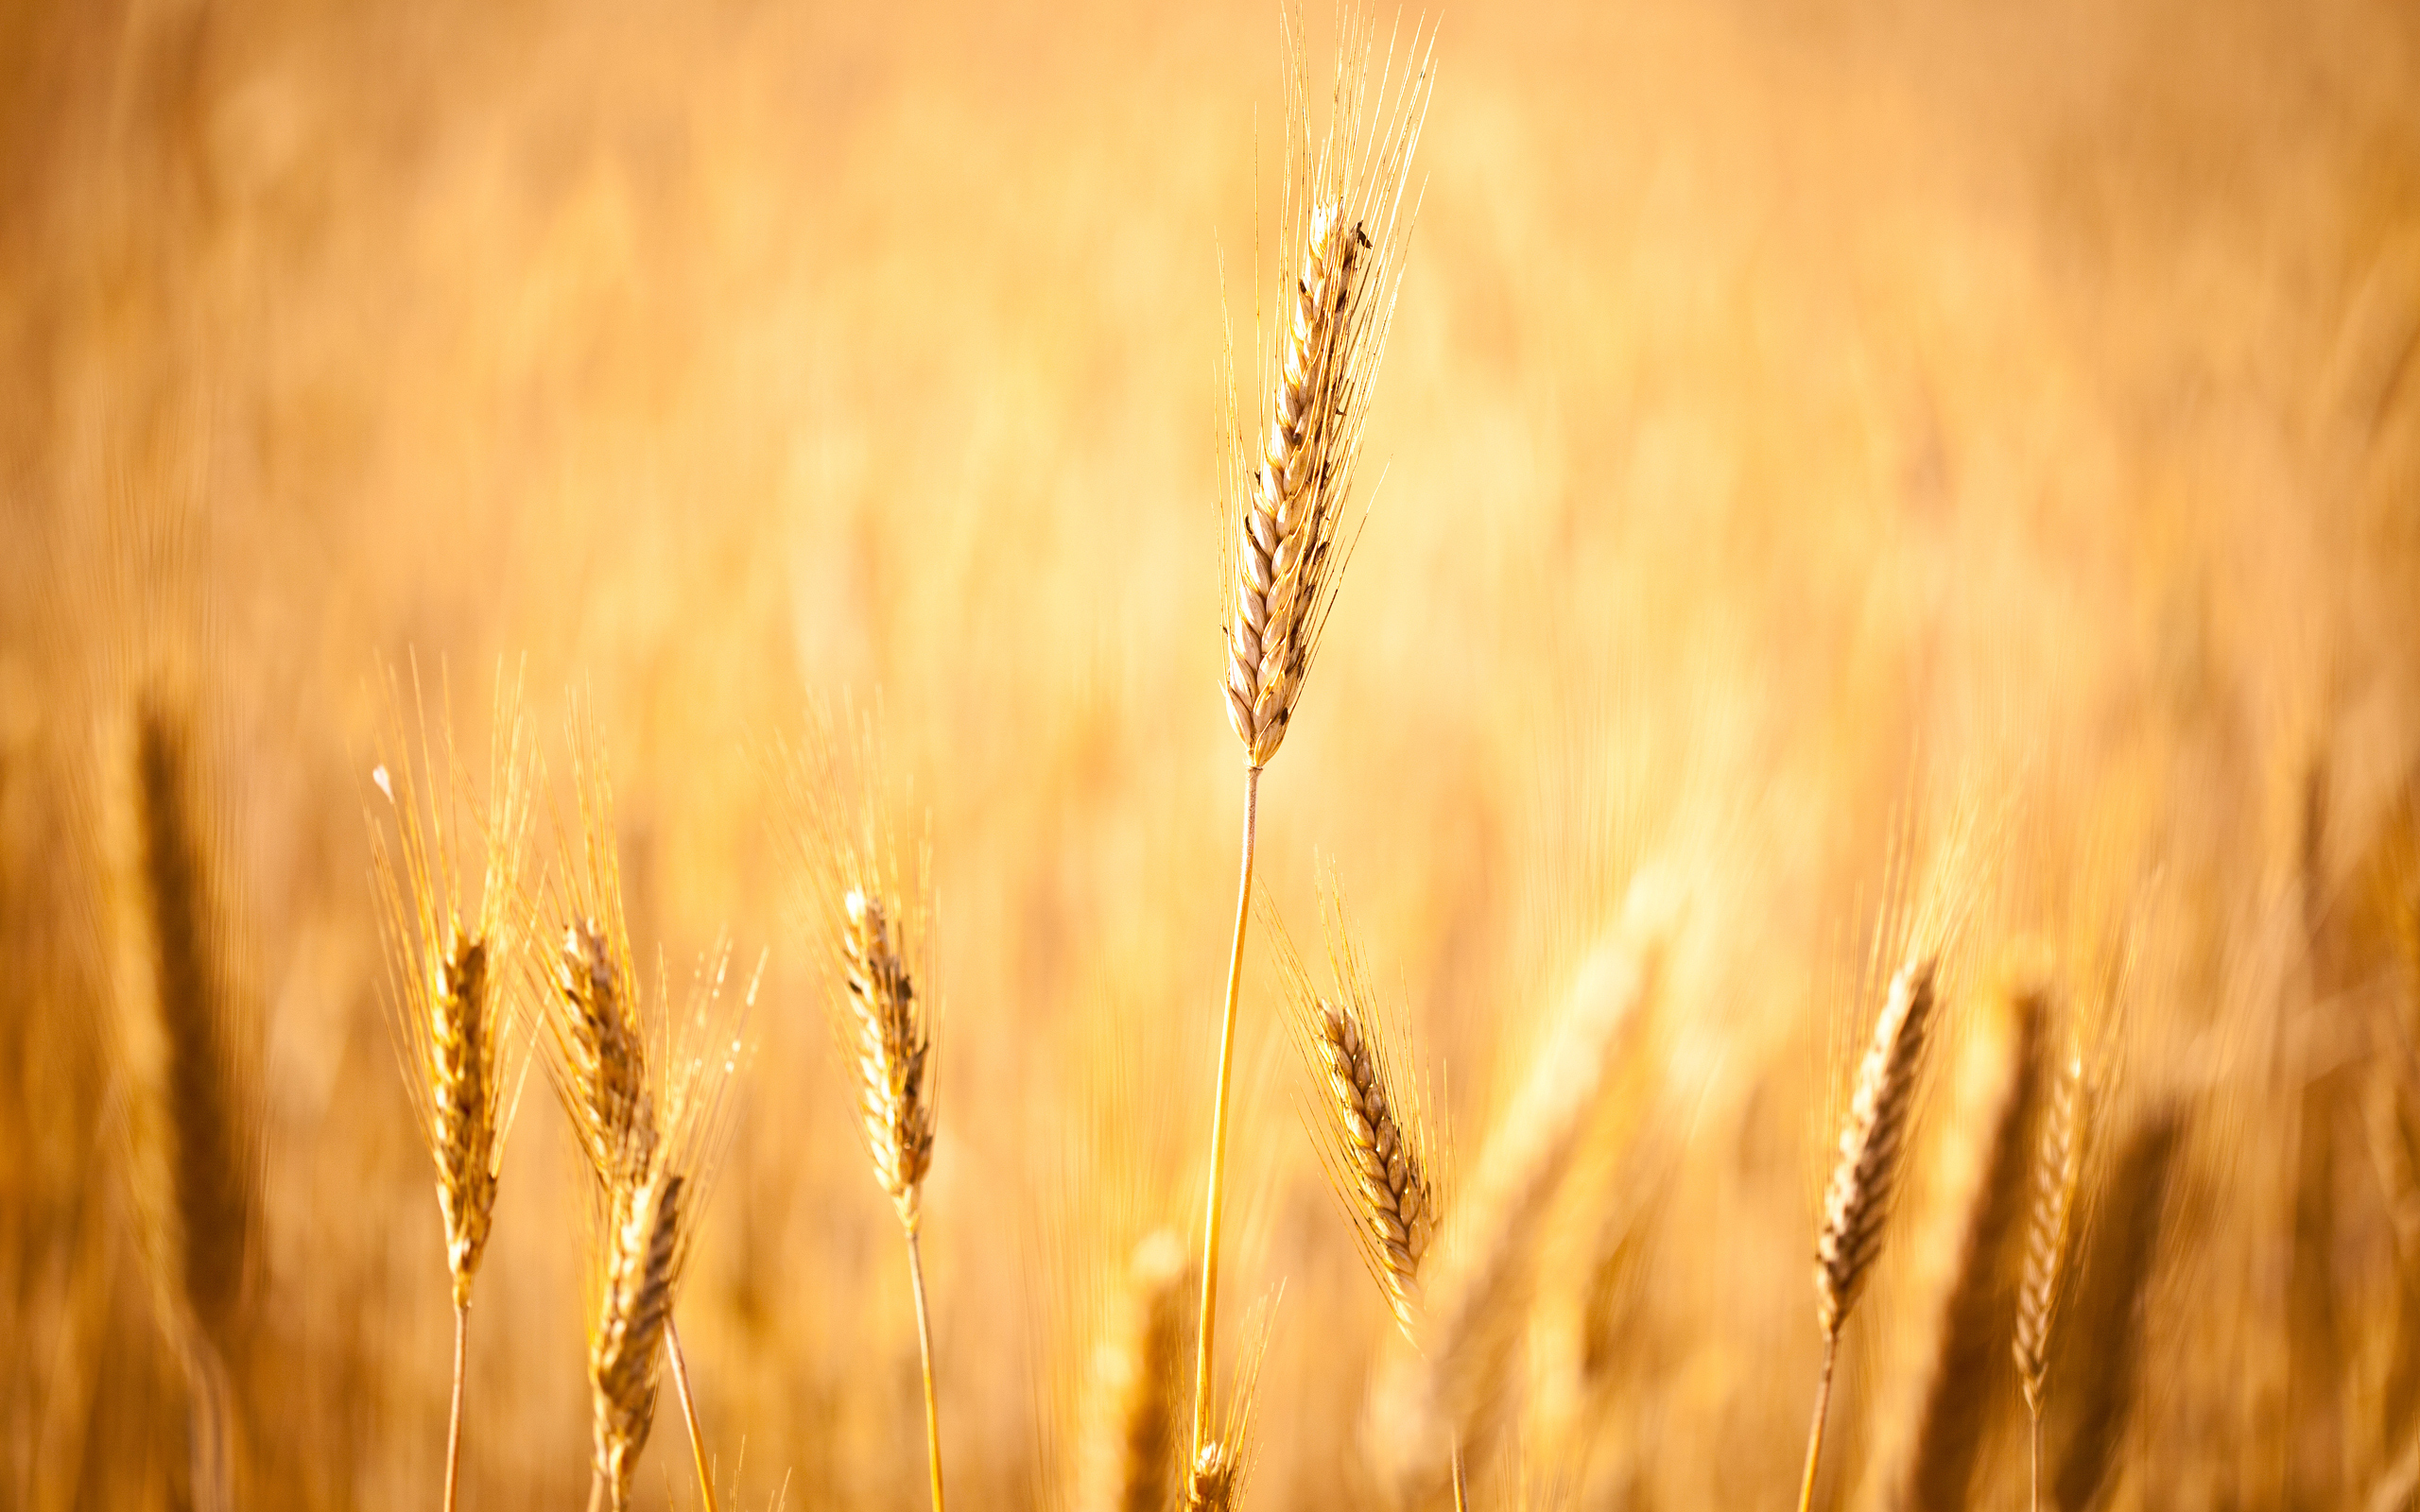 Autumn Iphone 6 Wallpaper Wheat Full Hd Wallpaper And Background Image 2560x1600